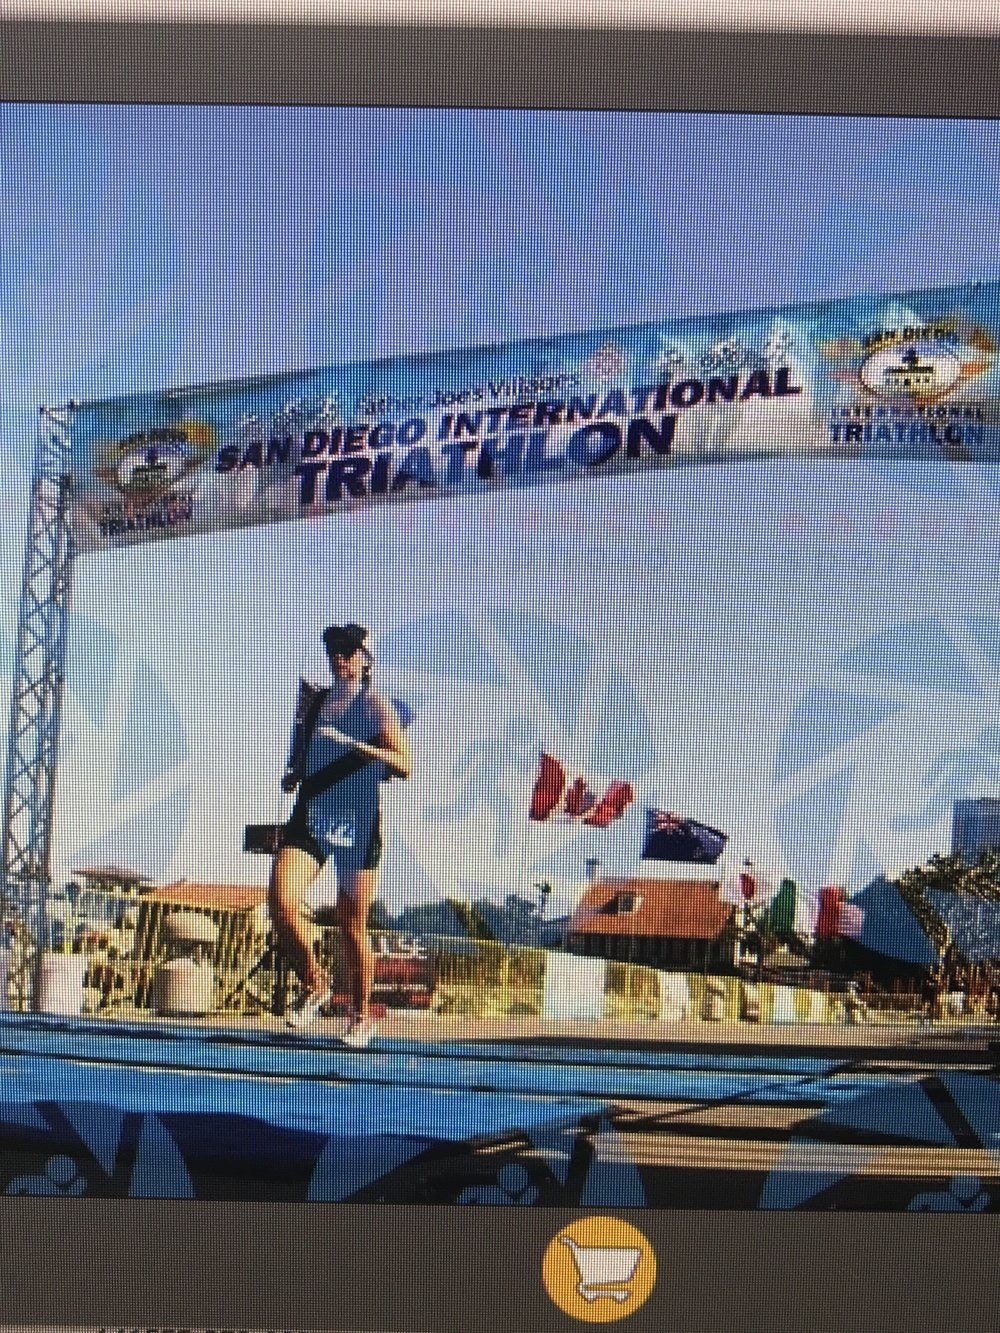 SD International Tri - June 2017